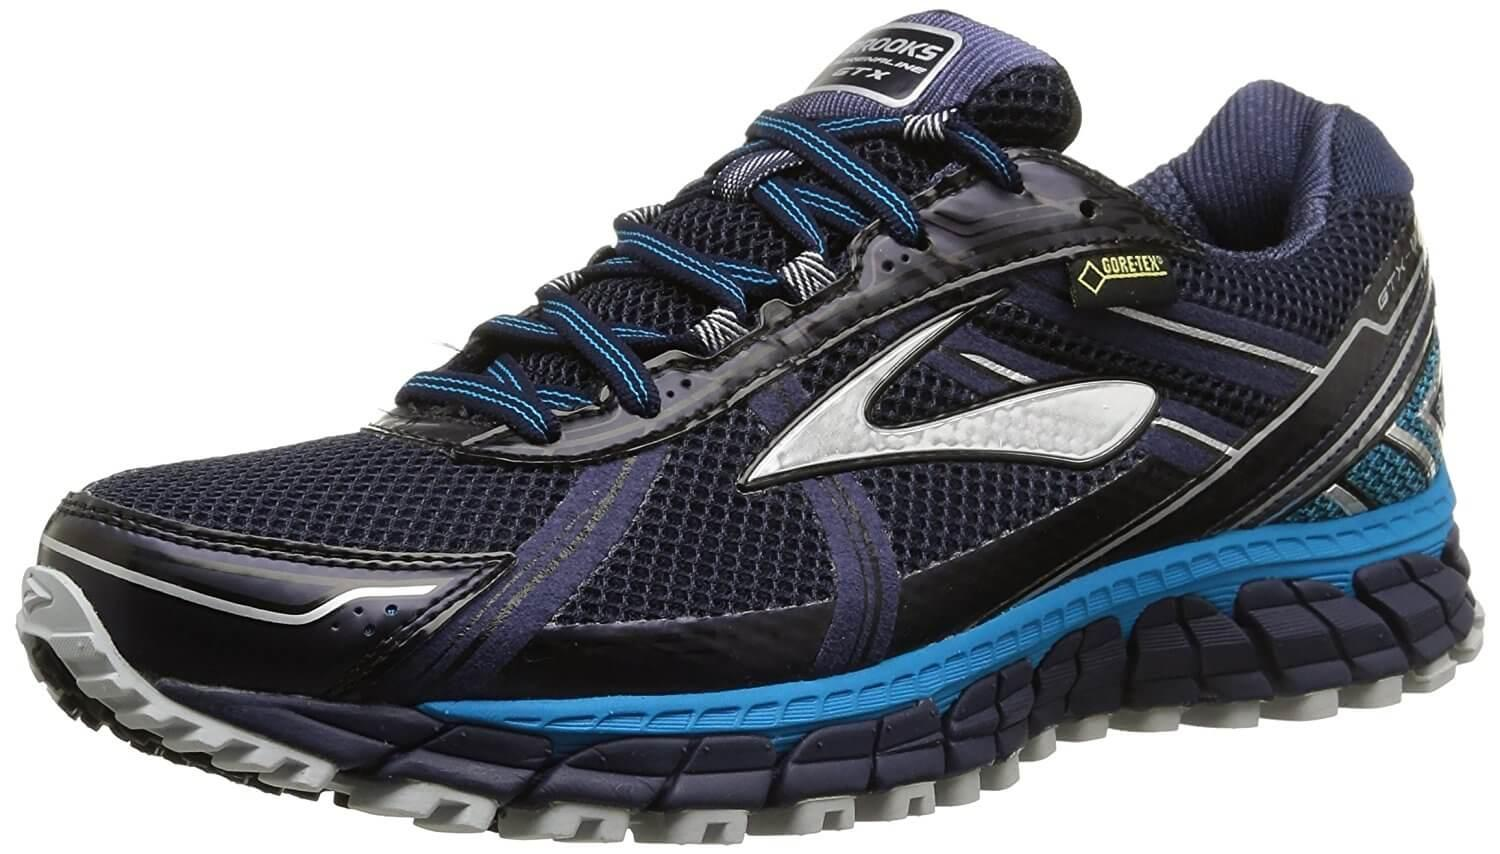 Three quarter view of the Brooks Adrenaline ASR 12 GTX